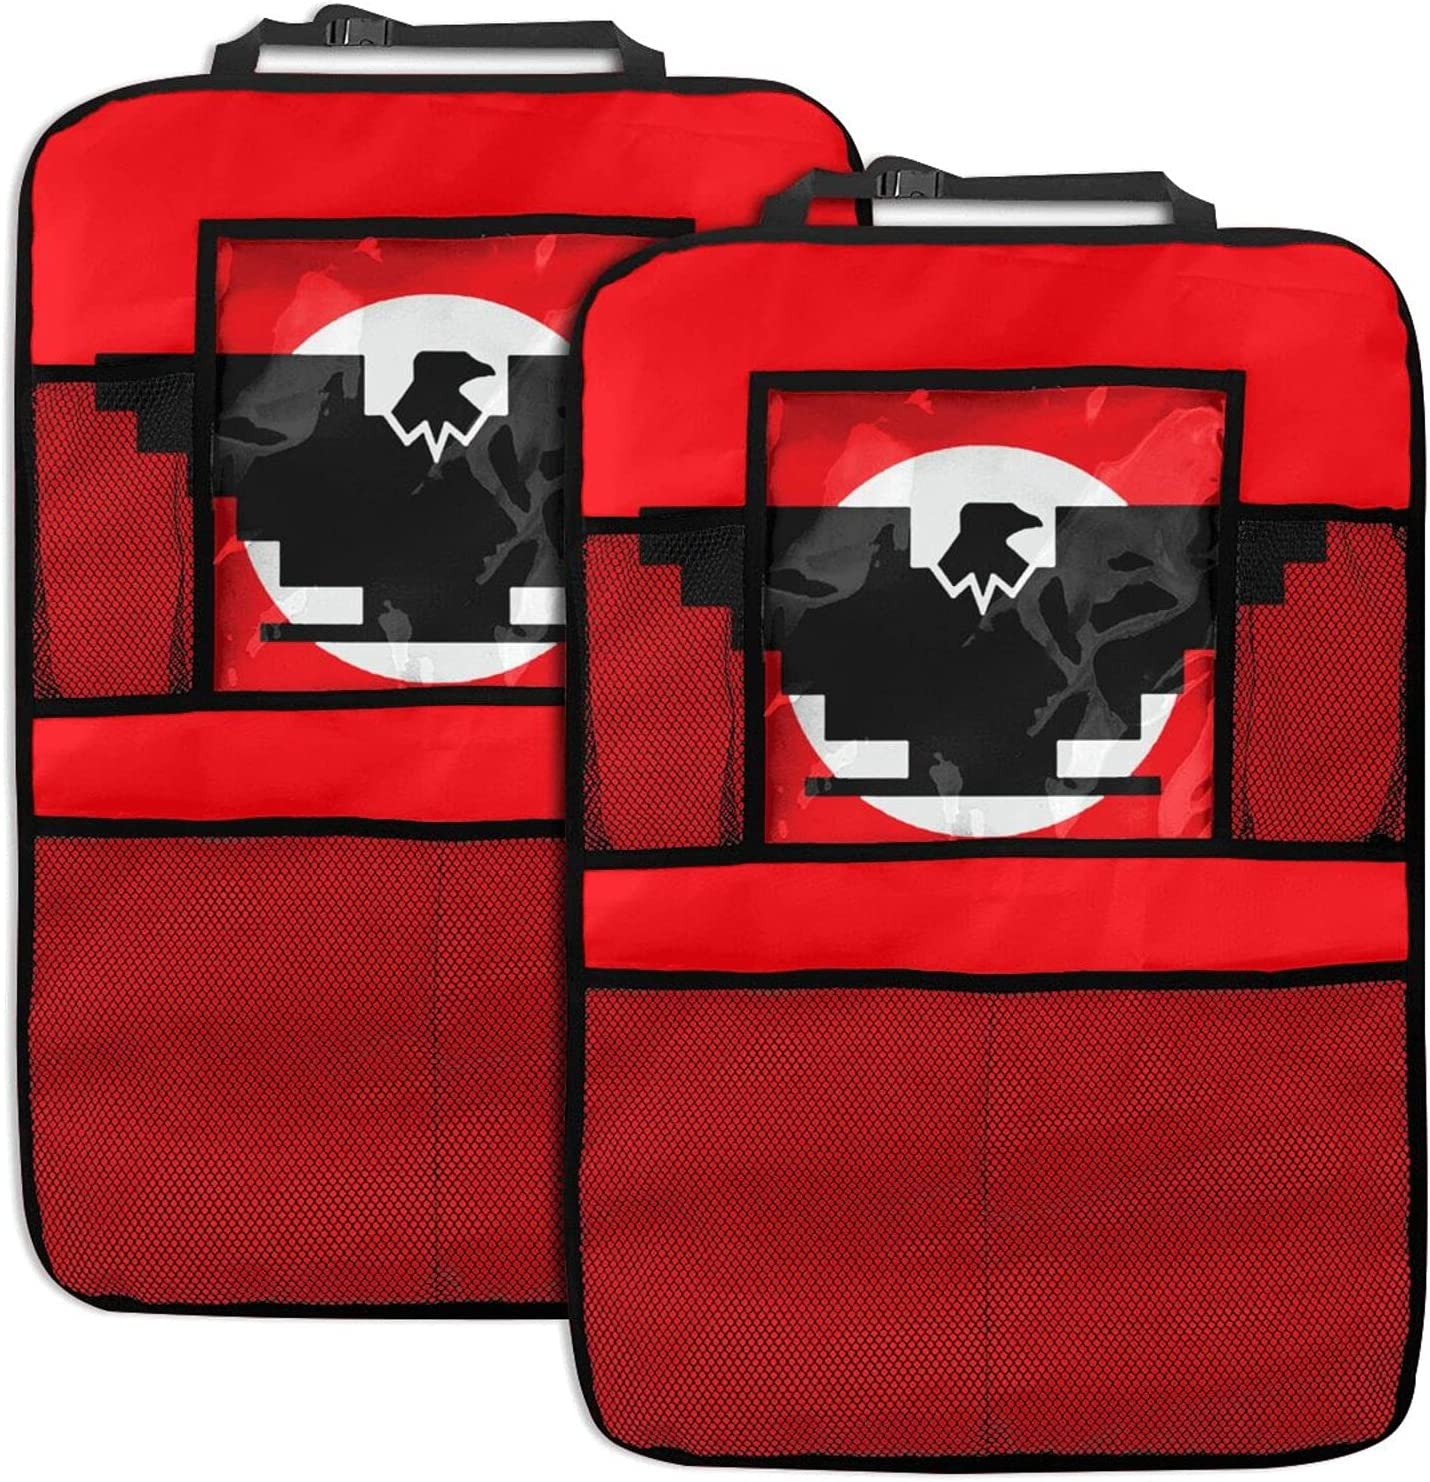 Aztlan Huelga Bird Special price for a limited time 2pc Car Backseat Back Seat specialty shop Protecto Organizer